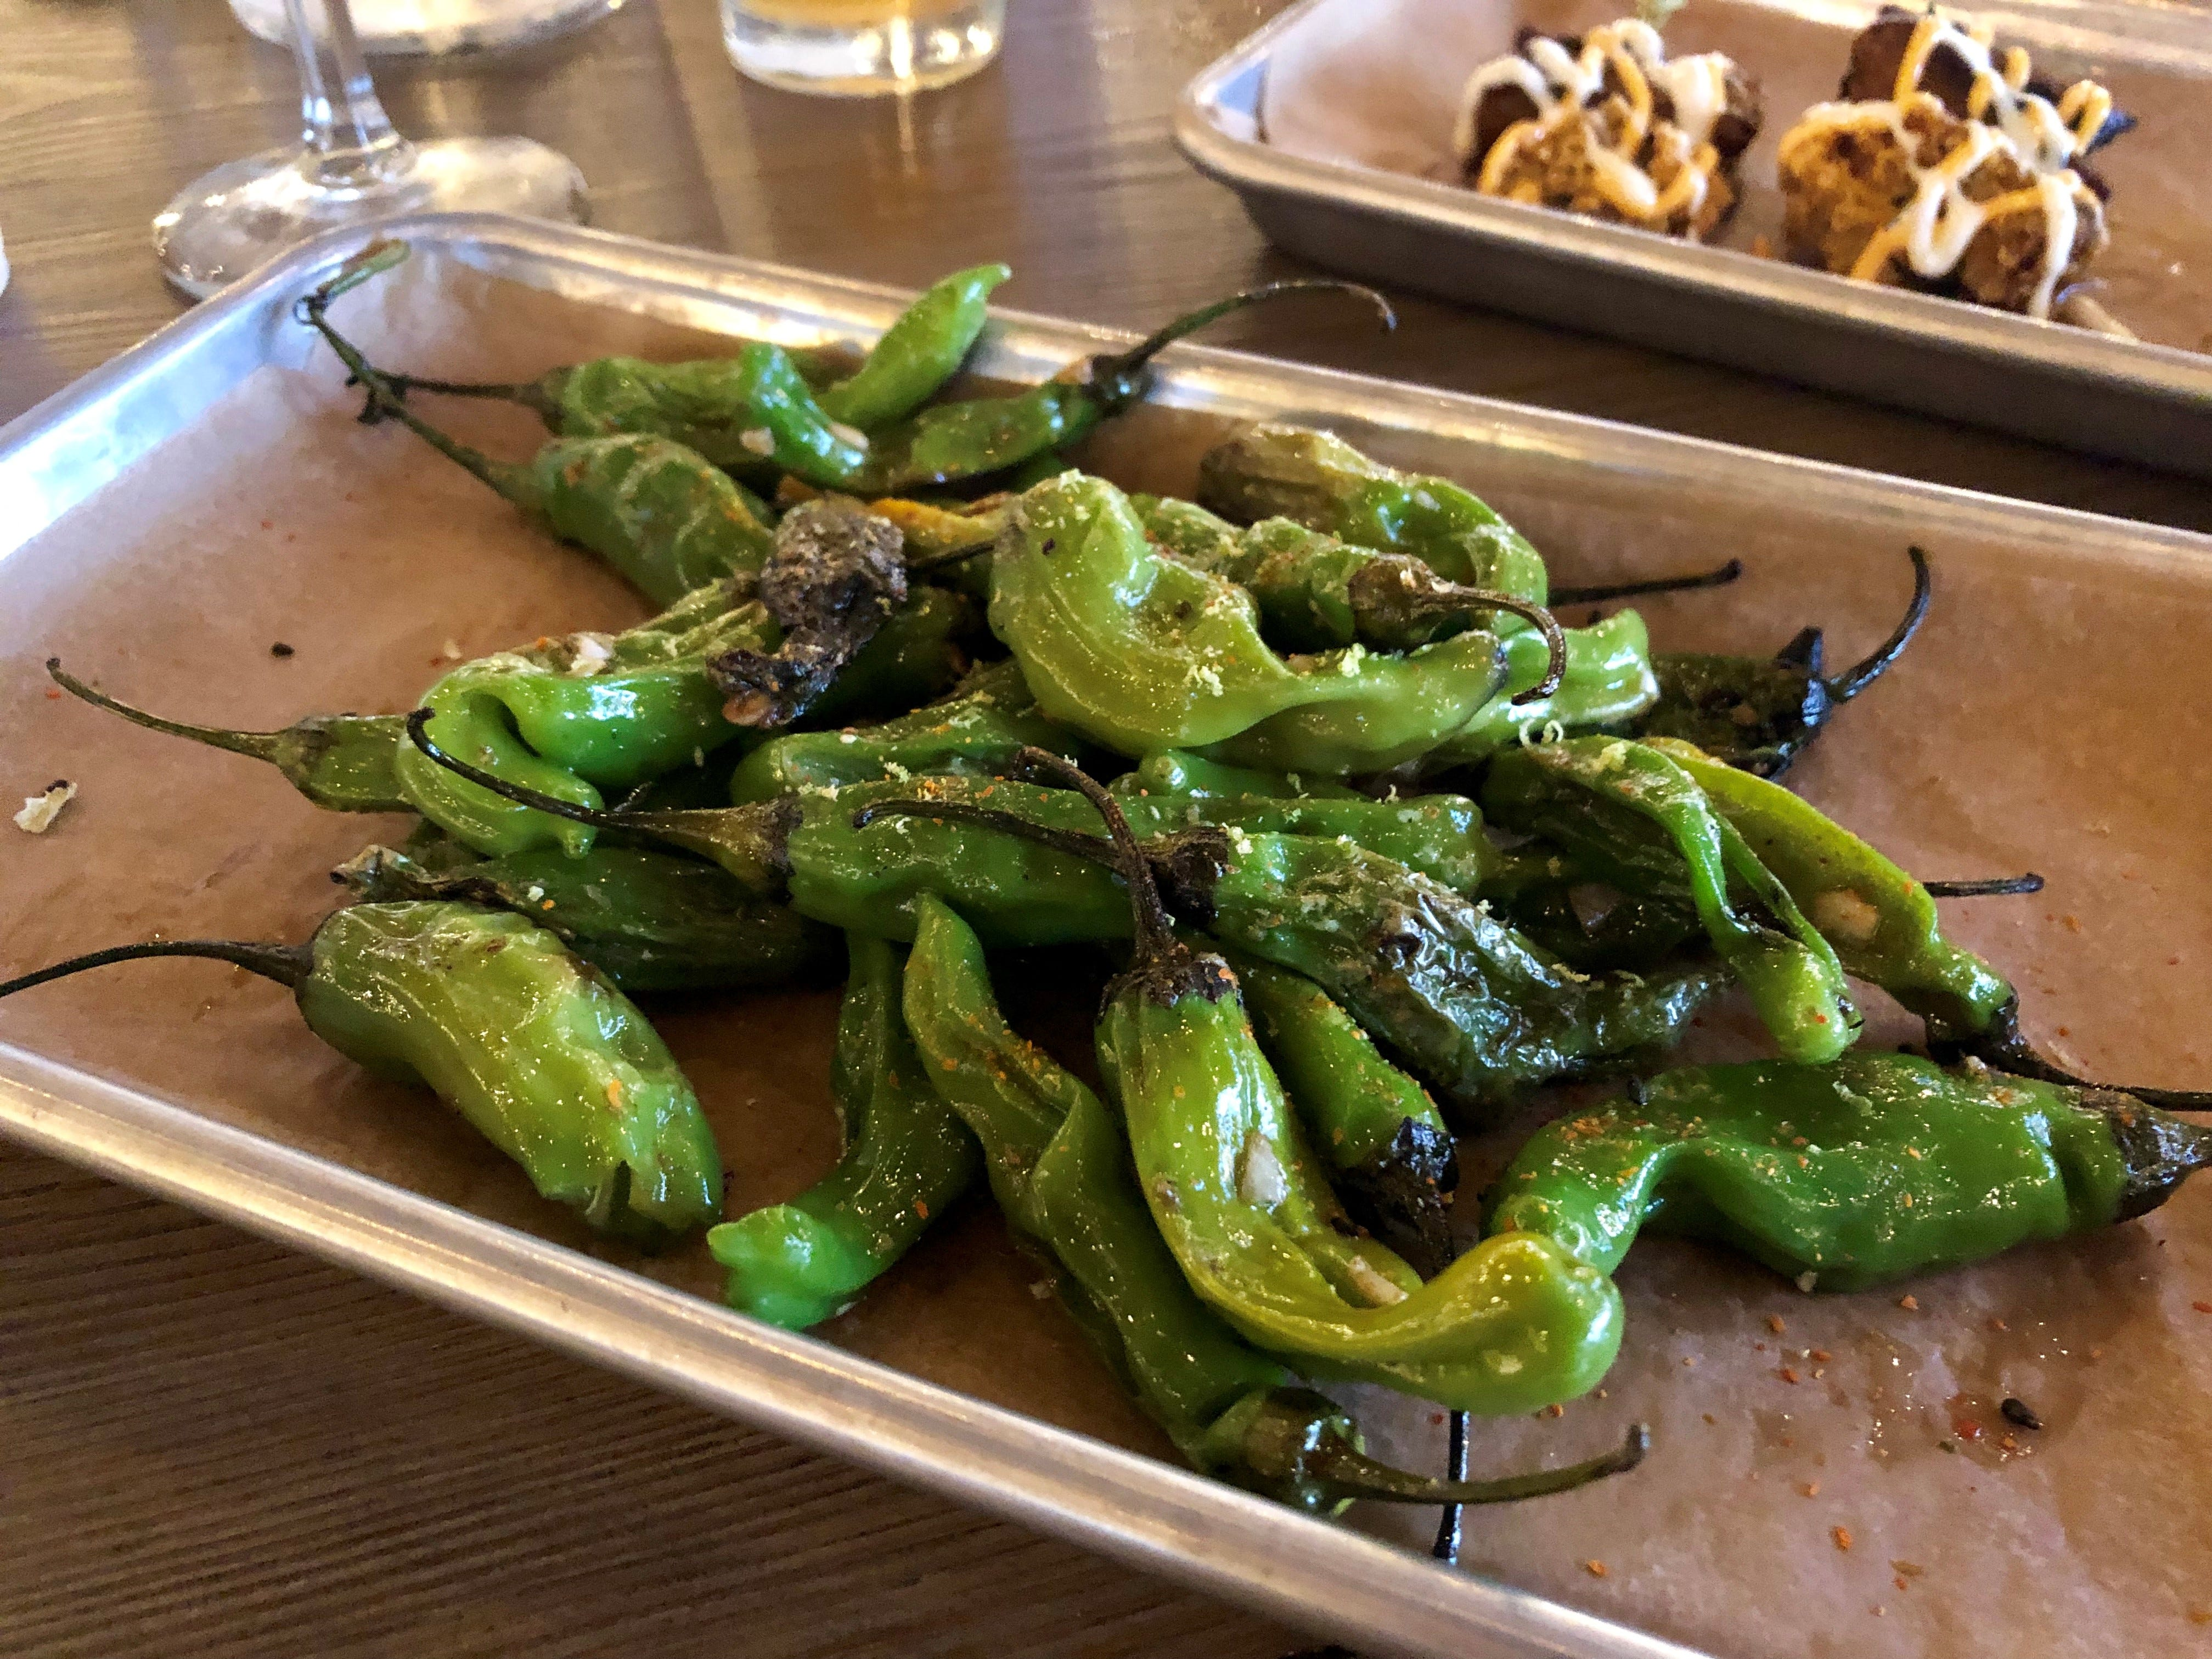 Shishito peppers with chili, sea salt and lime from Backyard Beer Garden in Cape Coral.